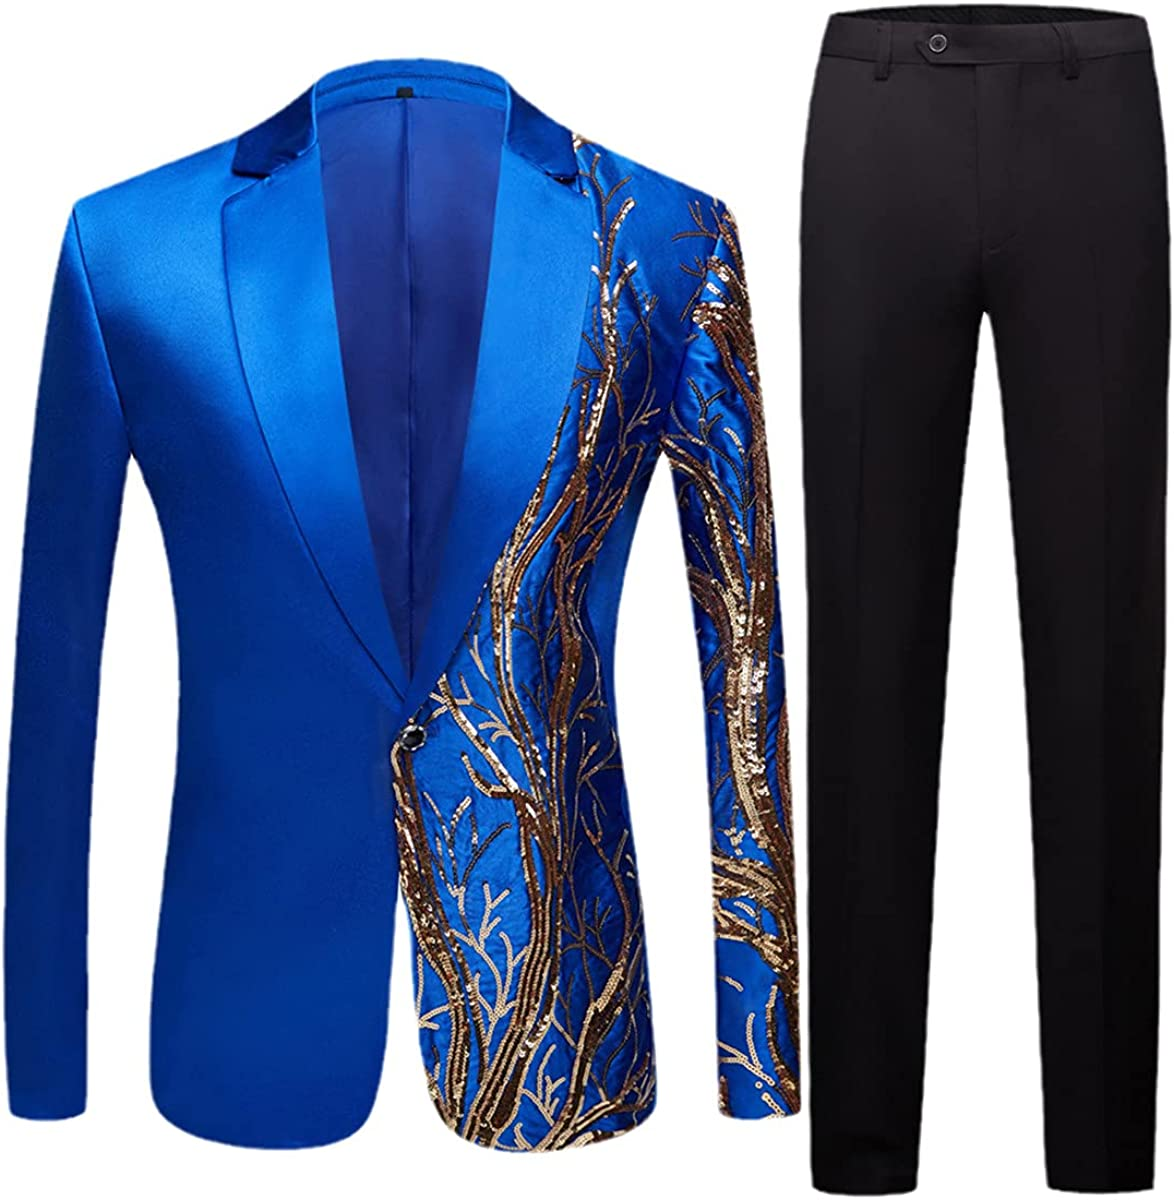 Men's Black Sequined Party Fashionable Slim Max 40% OFF fit Blazer Wedding